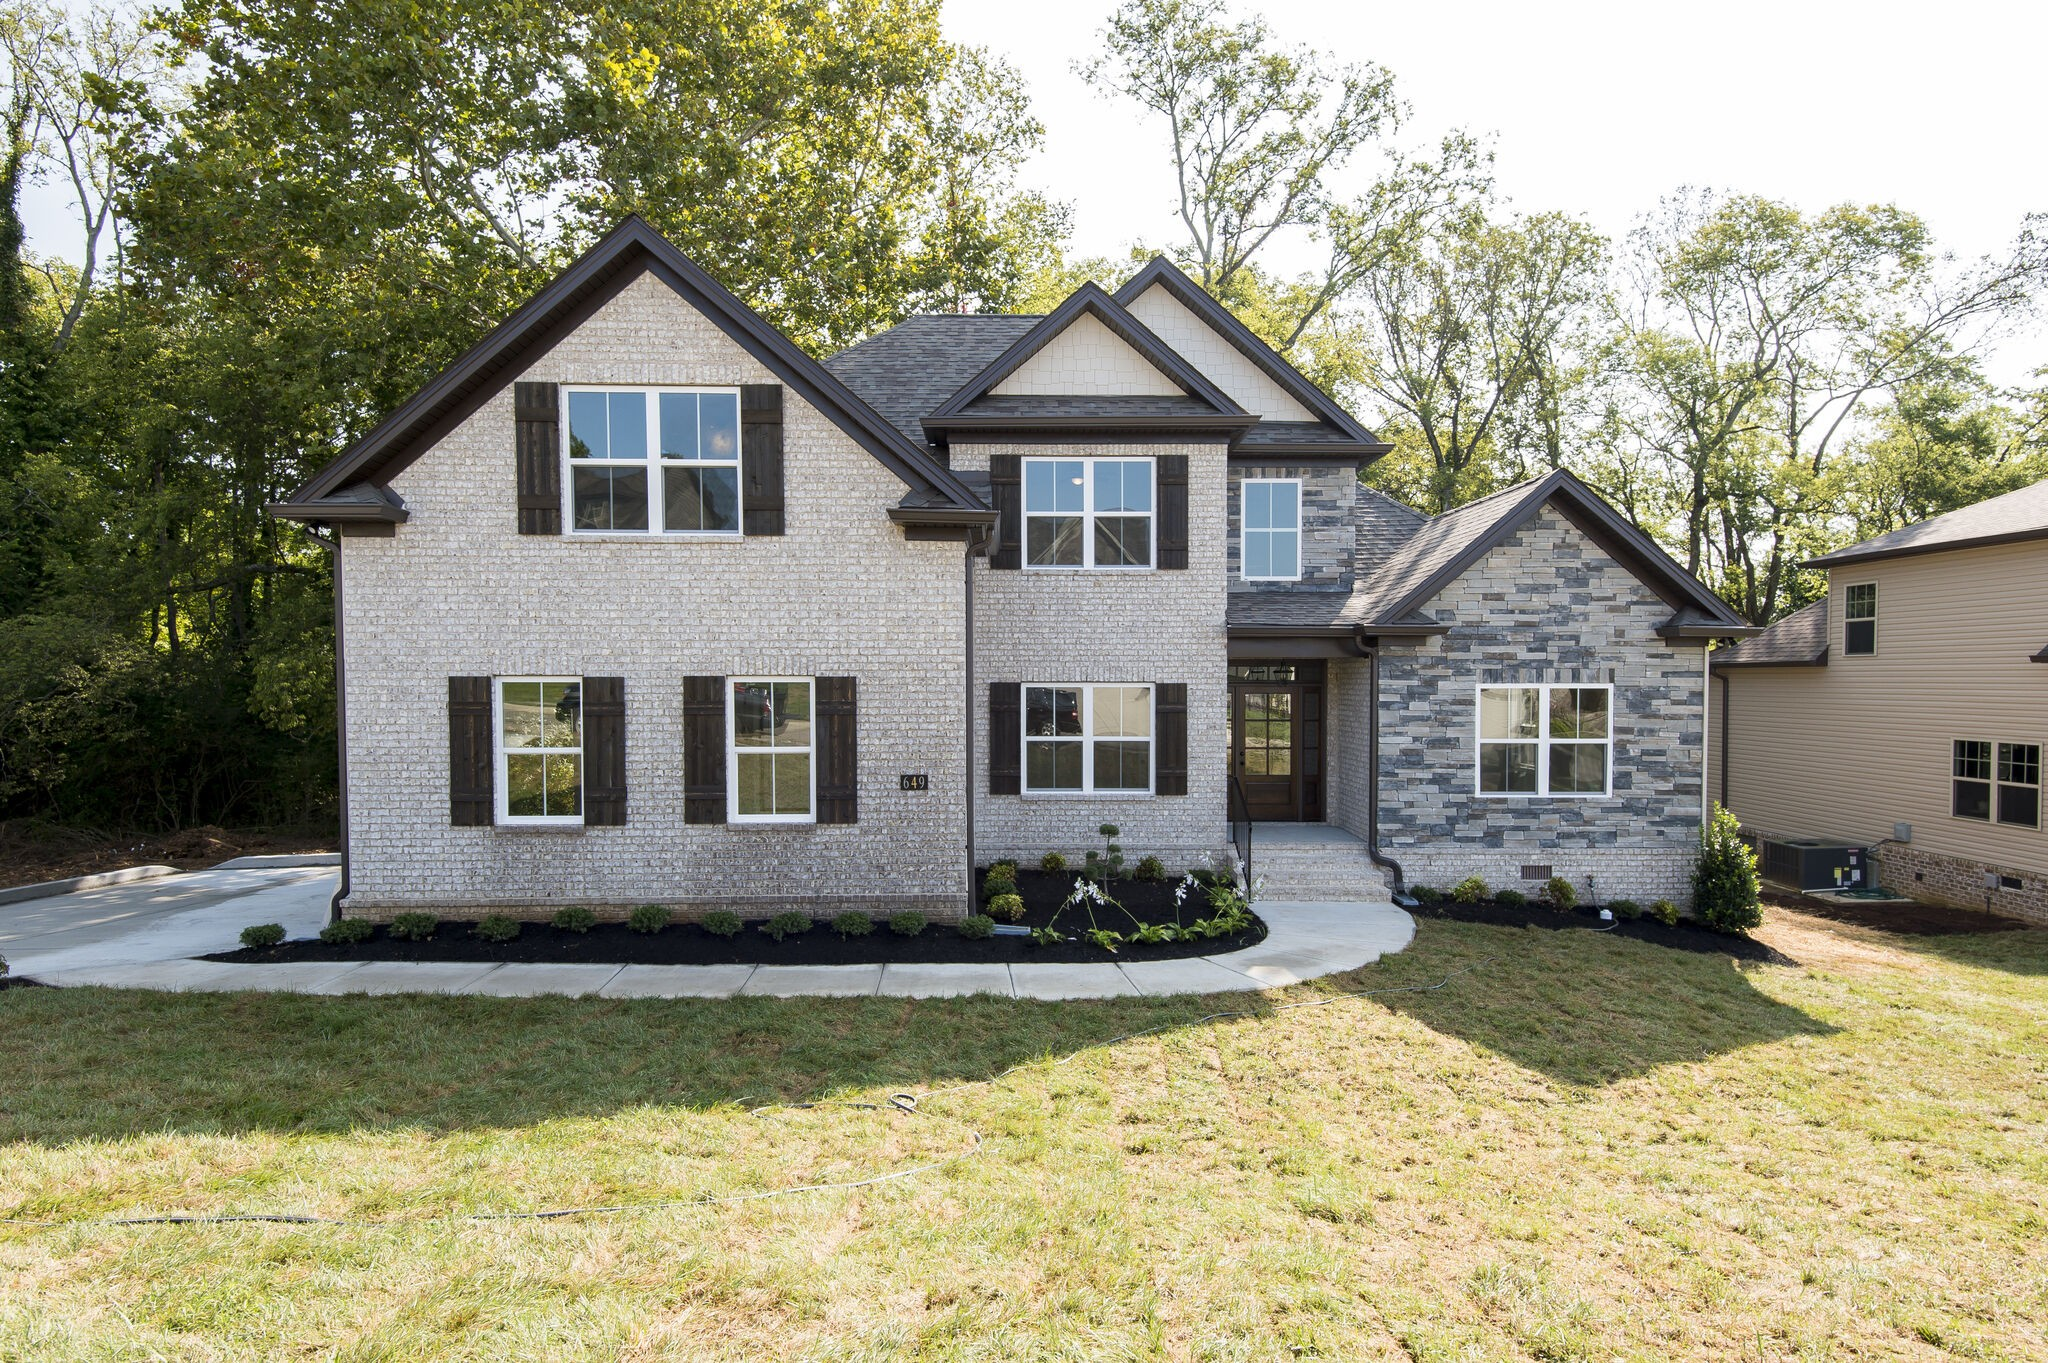 211 Creekside Dr Property Photo - Lewisburg, TN real estate listing